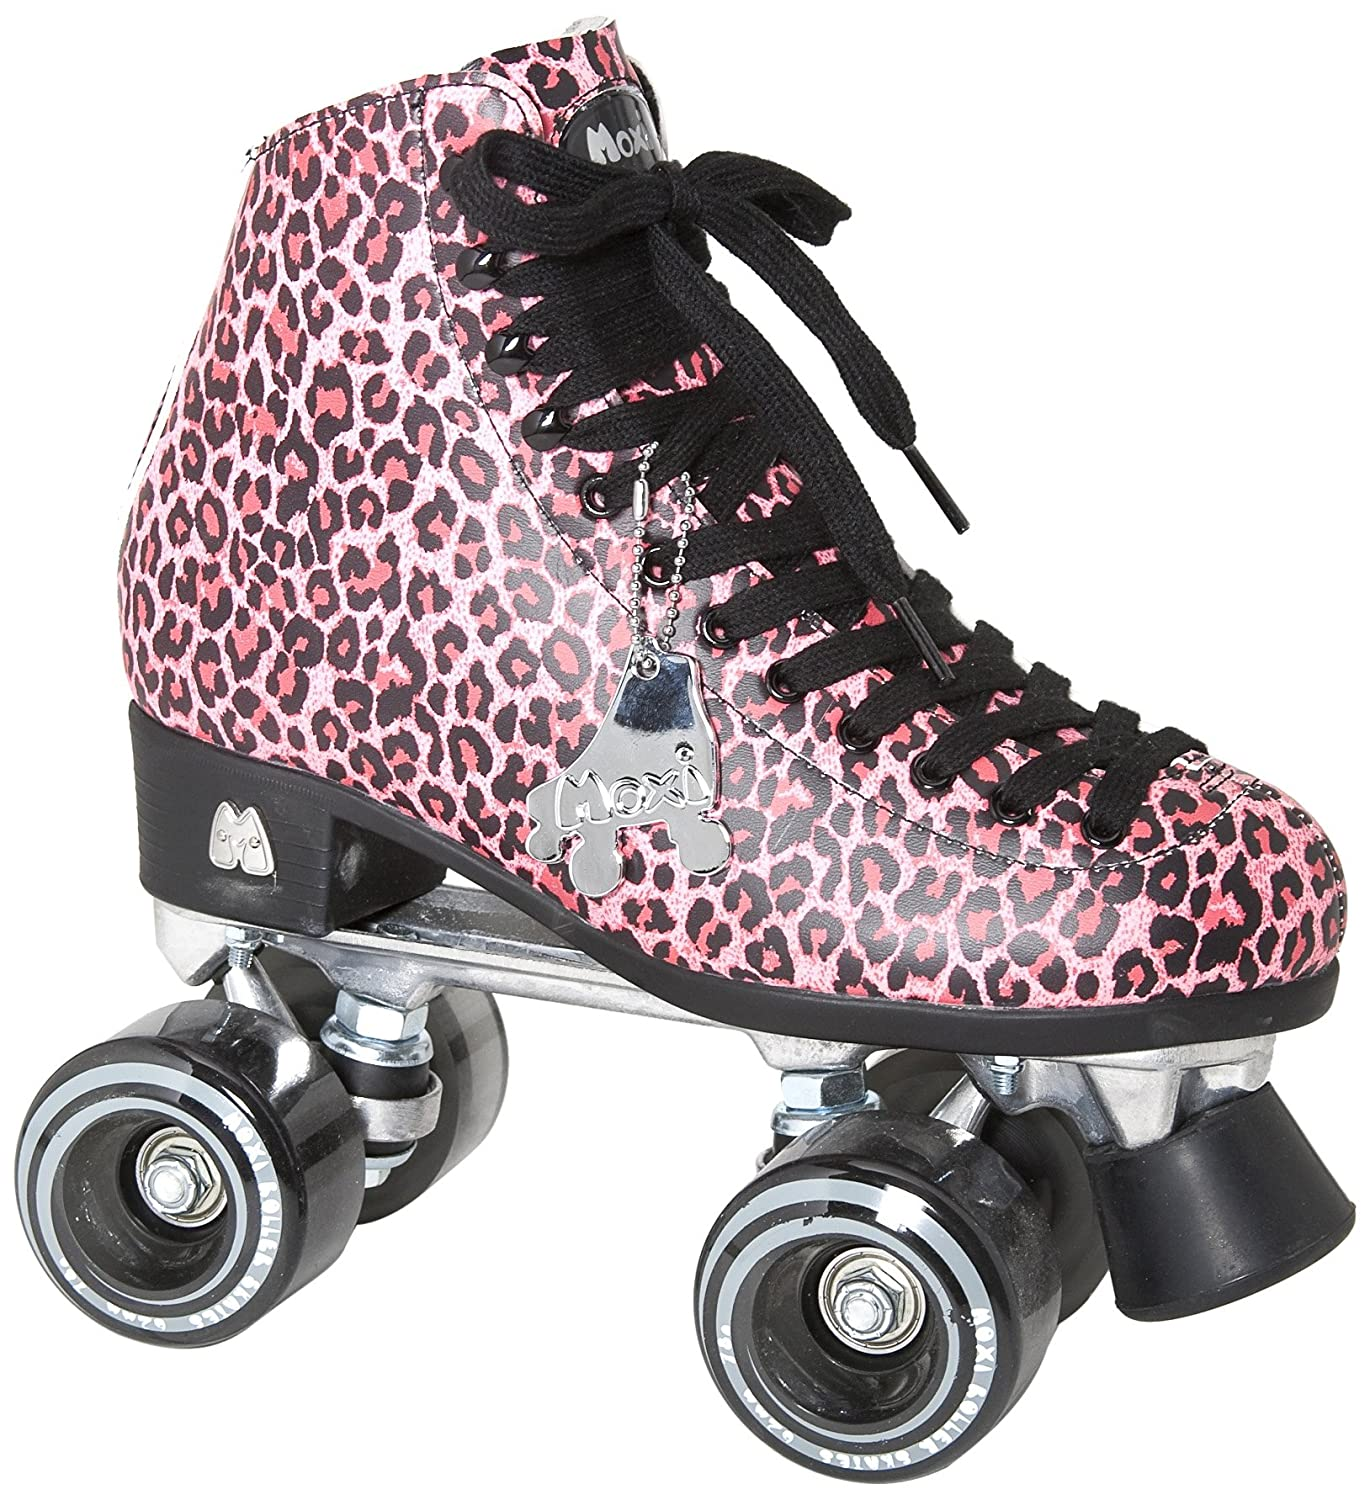 Roller skating rink quad cities - Amazon Com Riedell Moxi Ivy Jungle Womens Outdoor Roller Skates 2014 Sports Outdoors